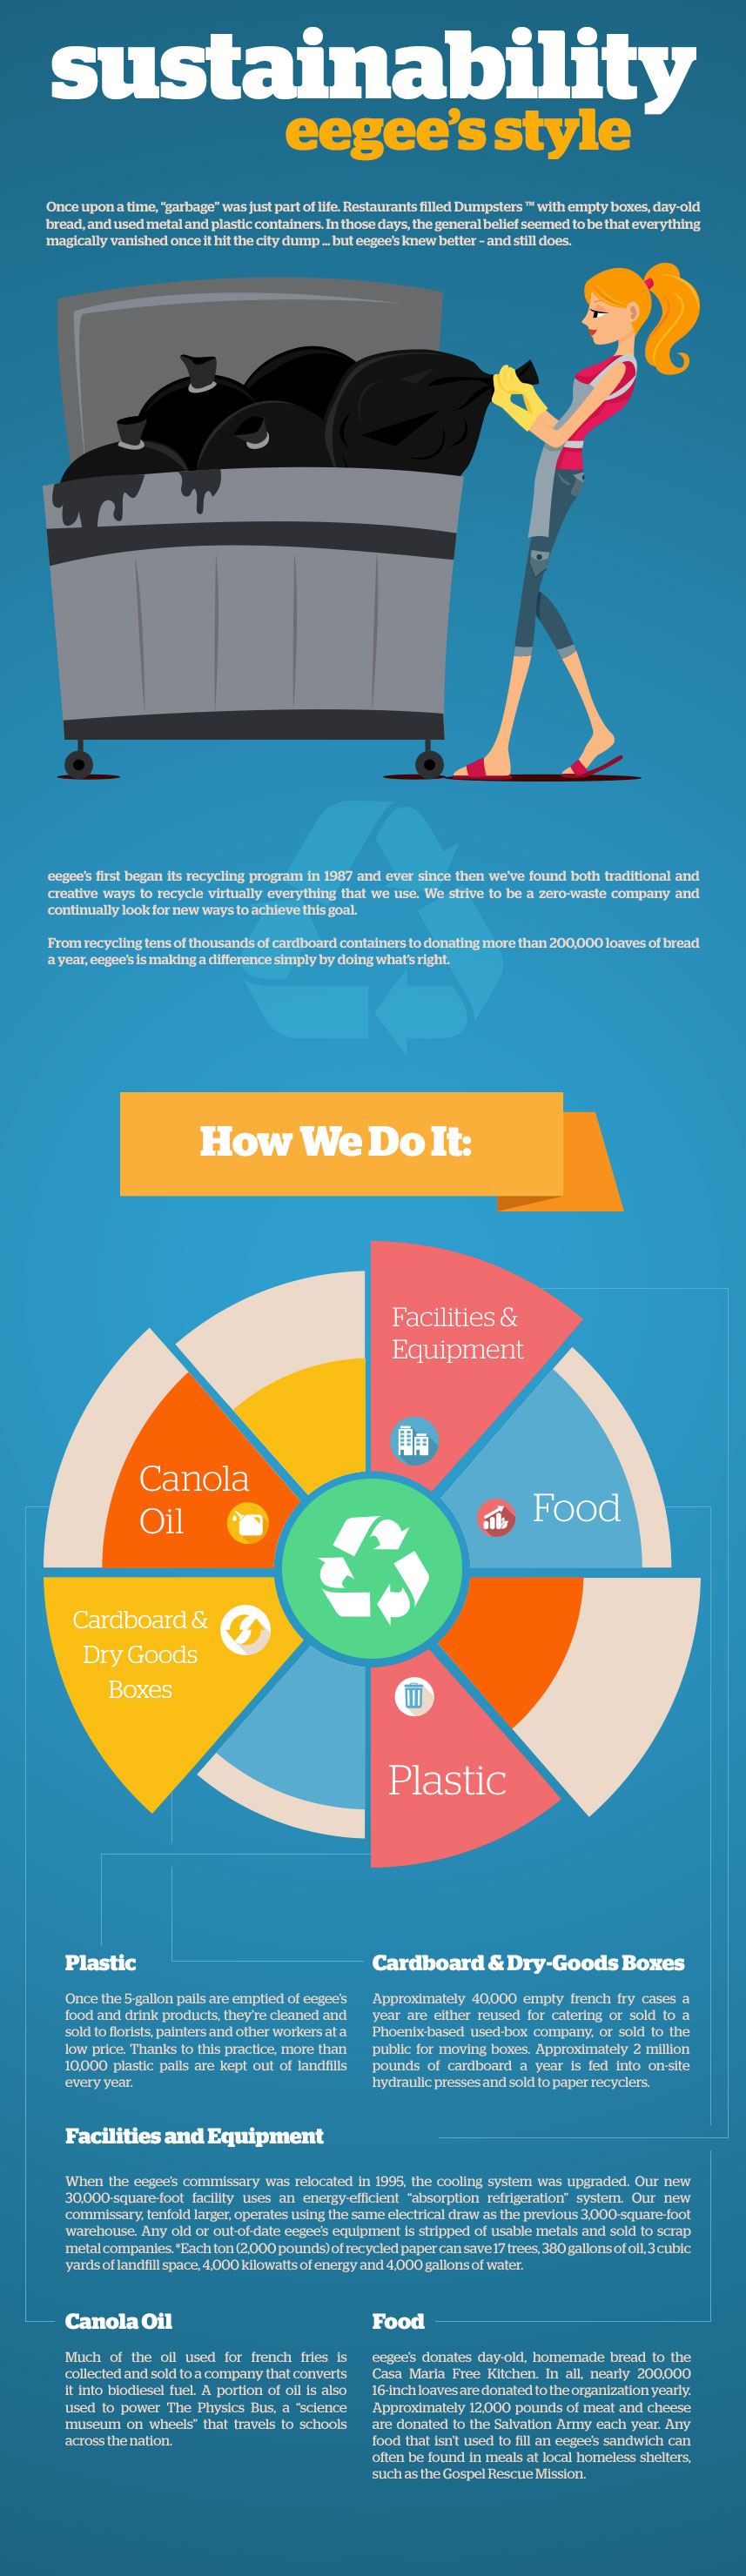 sustainability-infographic